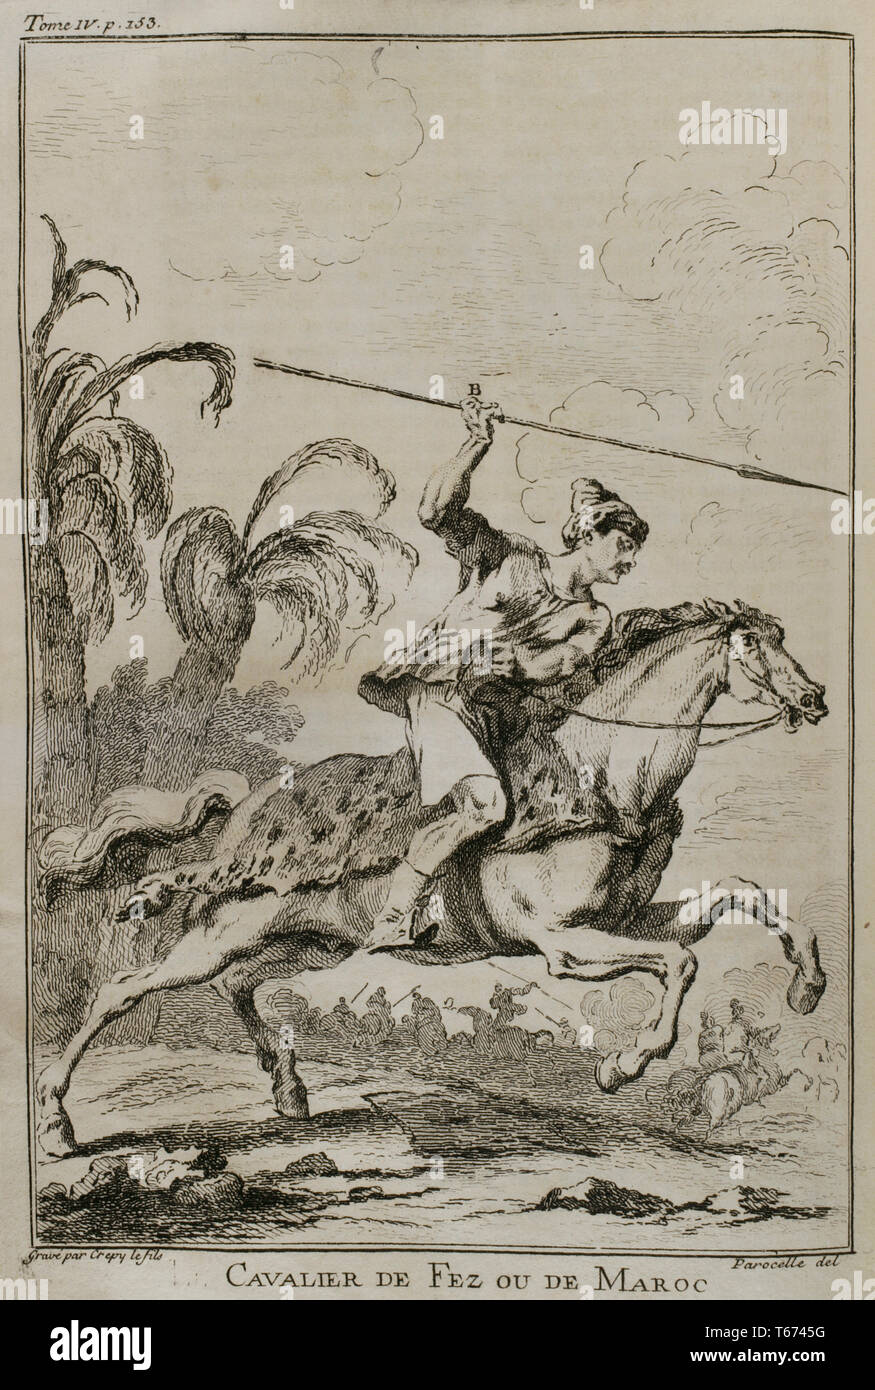 History by Polybius. Volume IV. French edition translated from Greek by Dom Vincent Thuillier. Comments of Military Science enriched with critical and historical notes by M. De Folard. Paris, chez Pierre Gandouin, Julien-Michel Gandouin, Pierre-Francois Giffart and Nicolas-Pierre Armand, 1728. Rider from Fez or Morocco. Engraving. - Stock Image